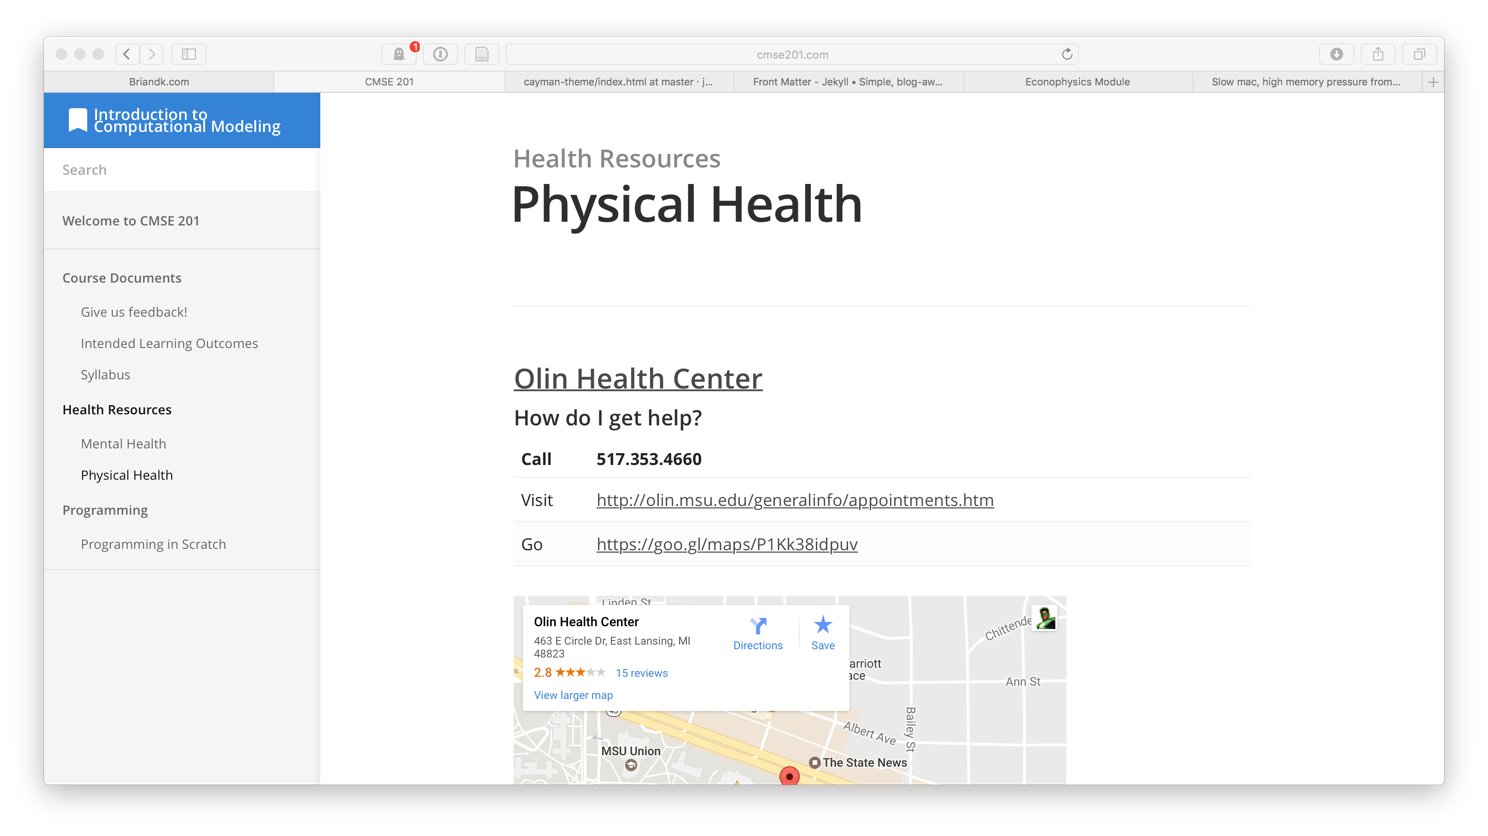 image of the cmse201.com website's Physical Health page, where students can see the contact info, address, and map to the student health center